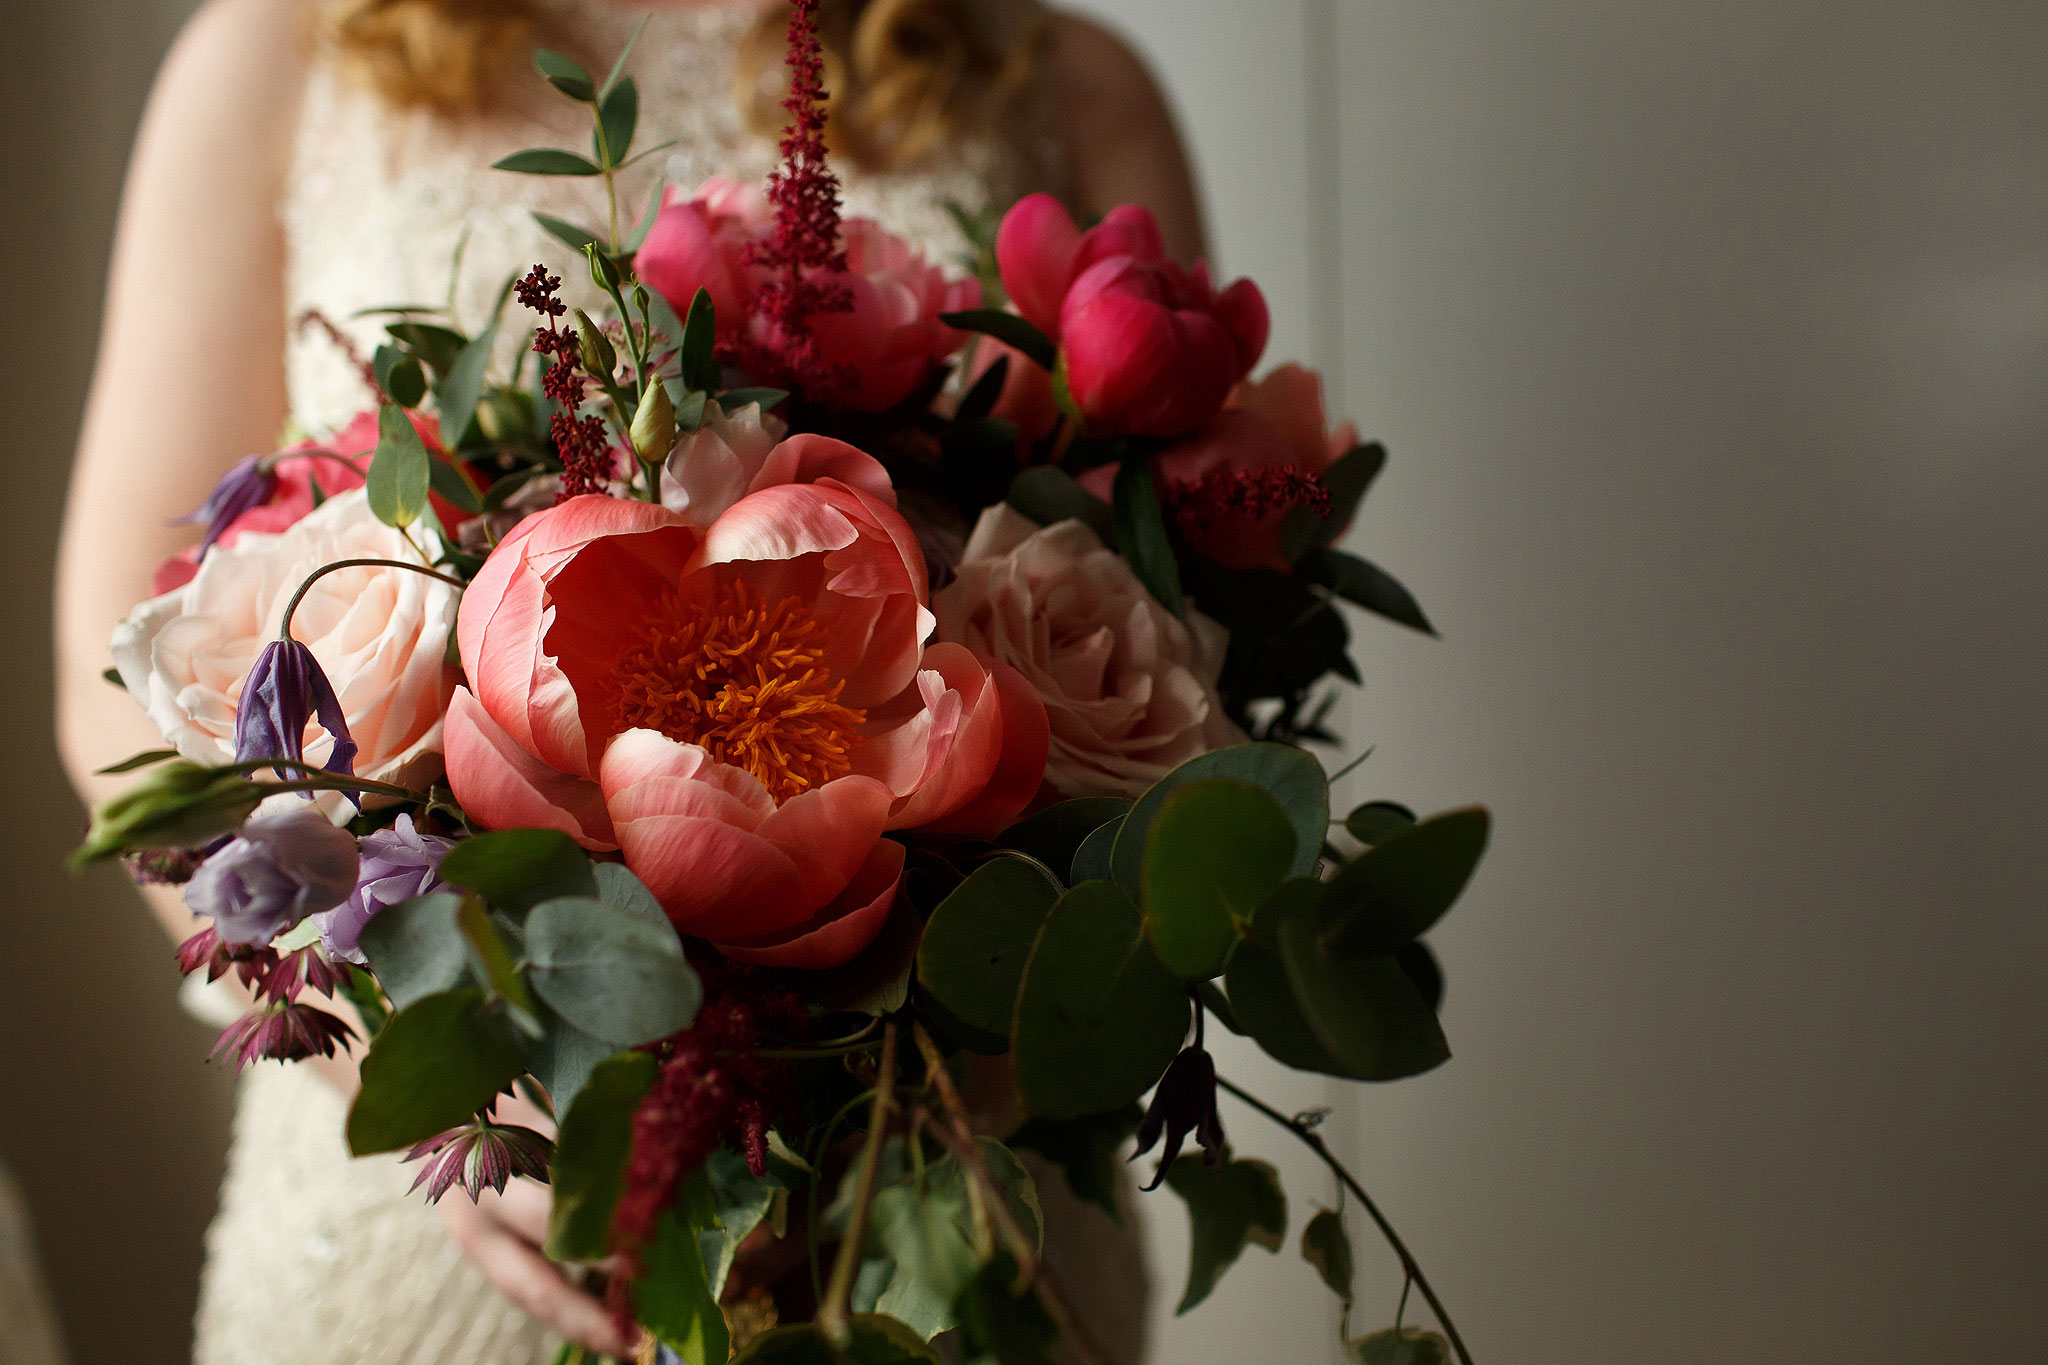 Gorgeous bridal bouquet with warm pink tones and unusual large flowers (peonies and poppies) being held by bride wearing beaded wedding dress - The Villa at Wrea Green Wedding Photography - Toni Darcy Photography